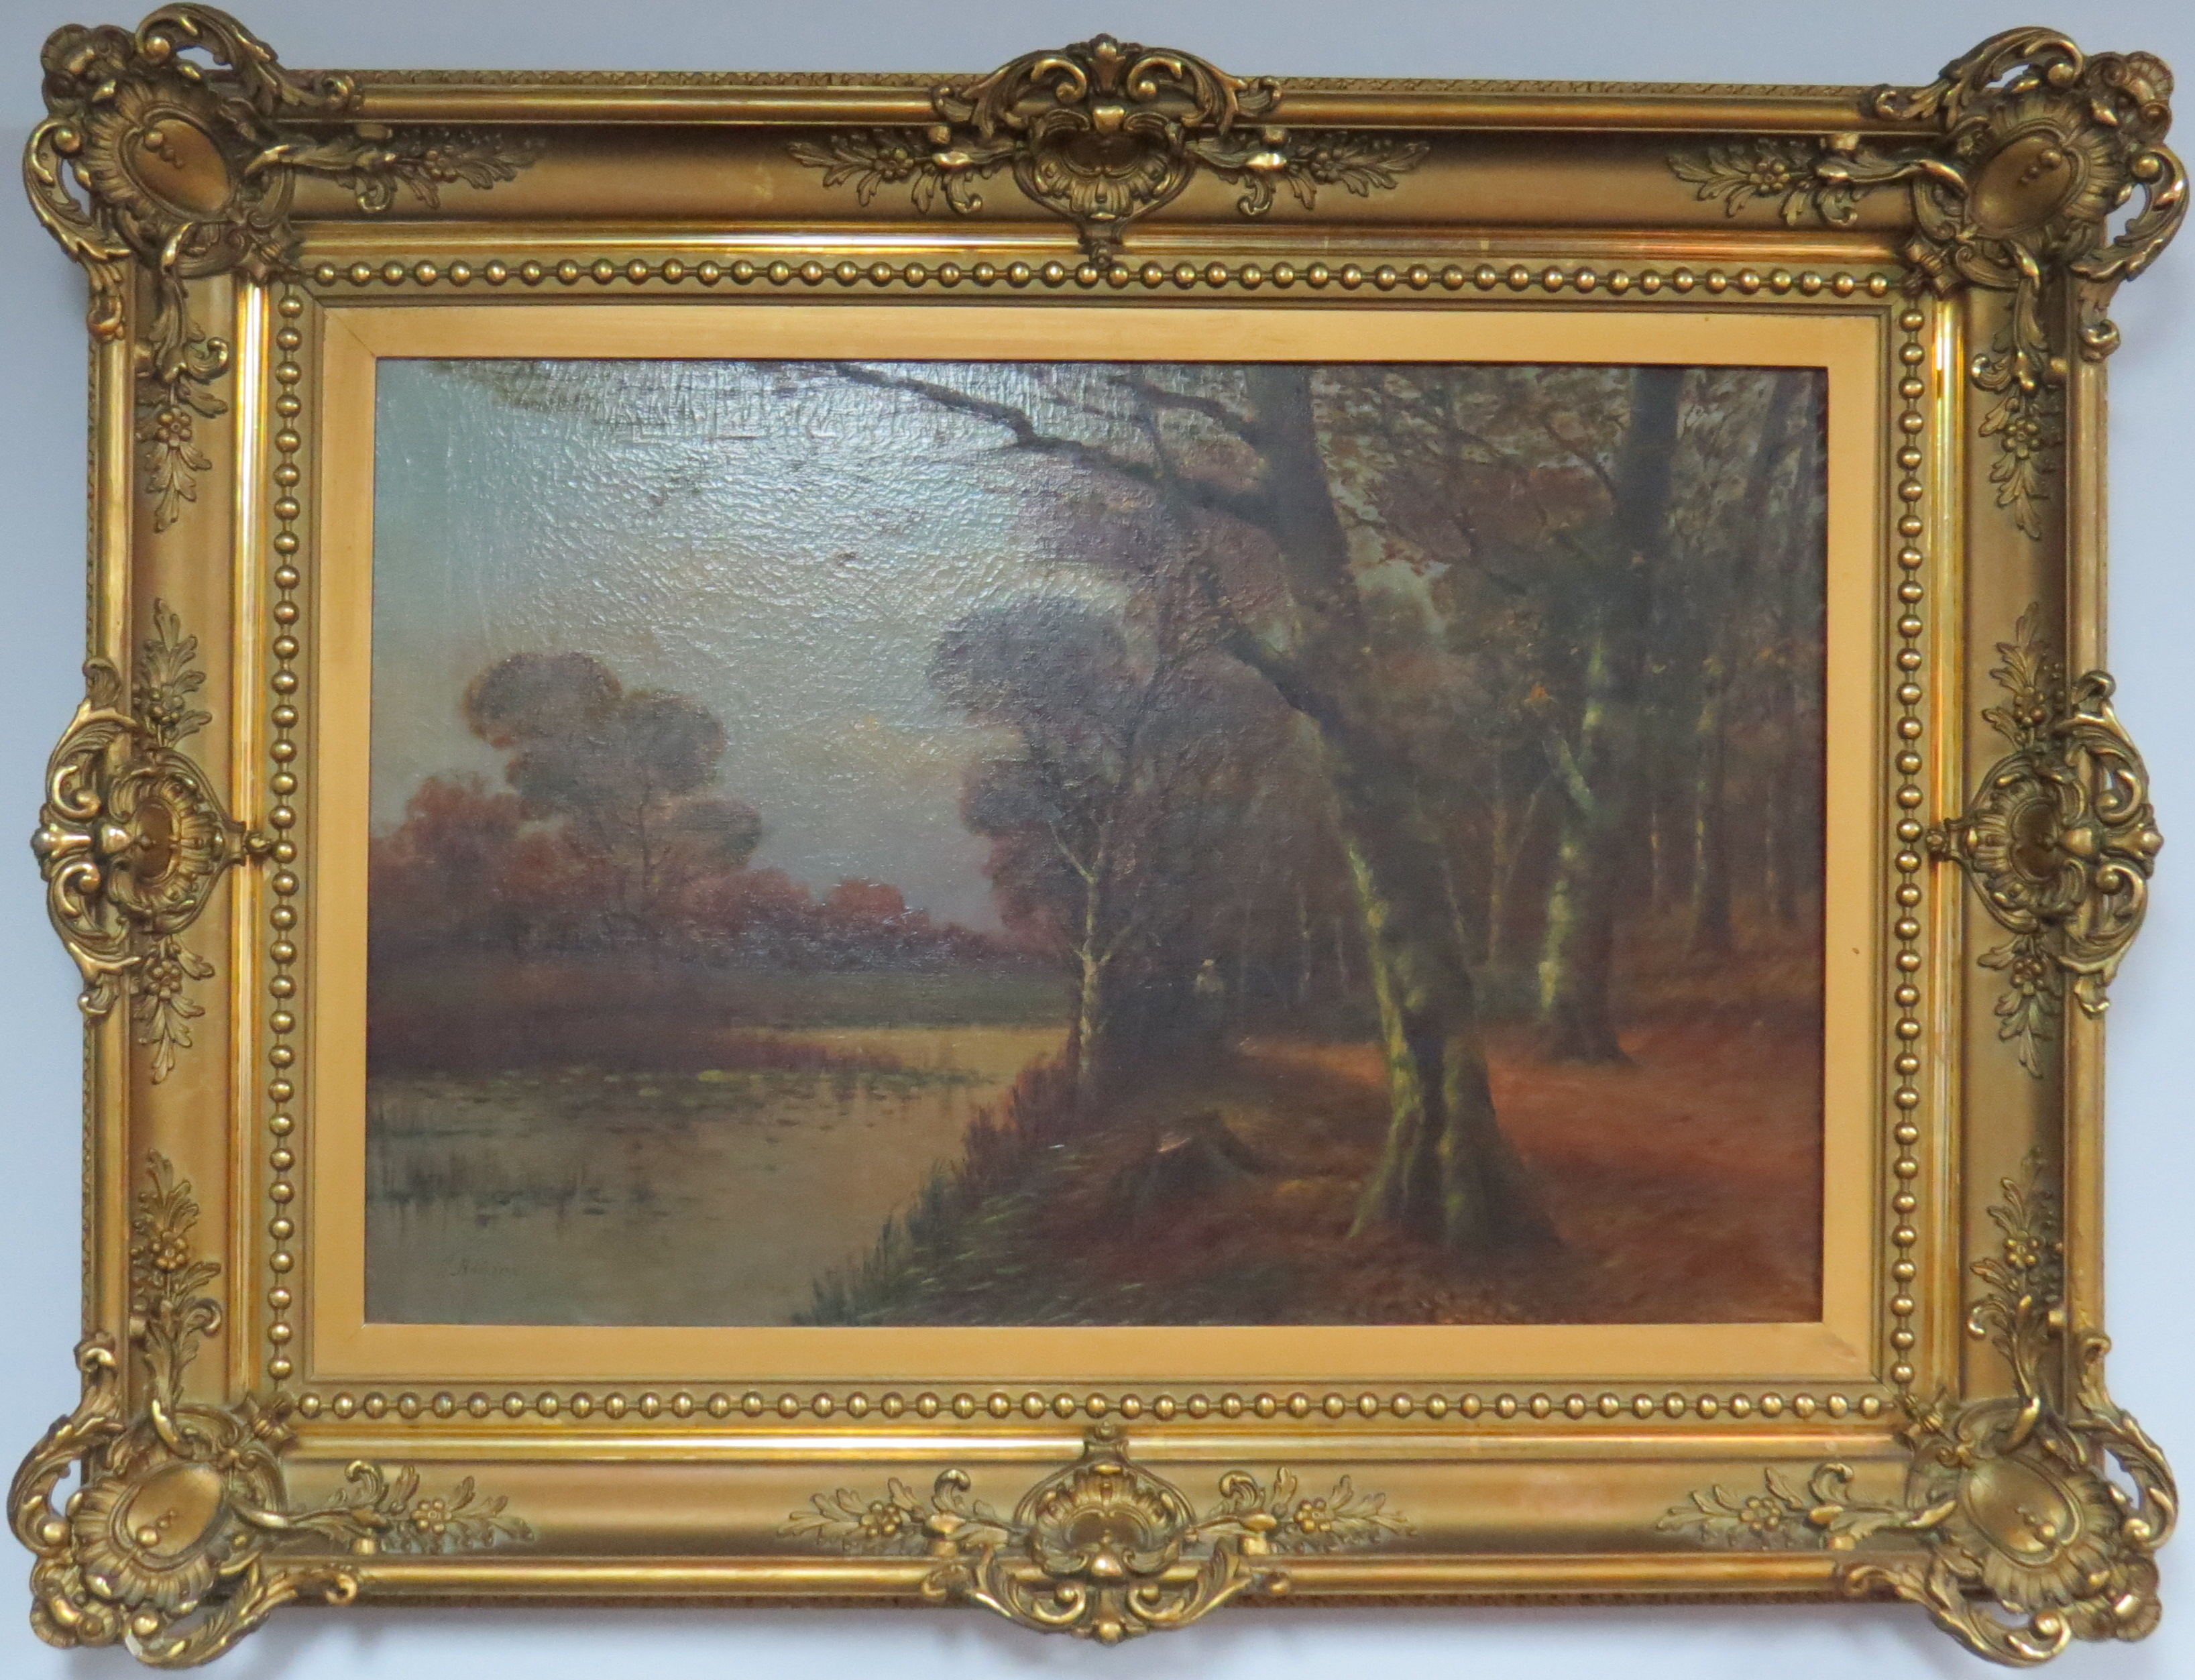 Oil on Canvas of a Landscape with a Lake, signed R. Bohmer